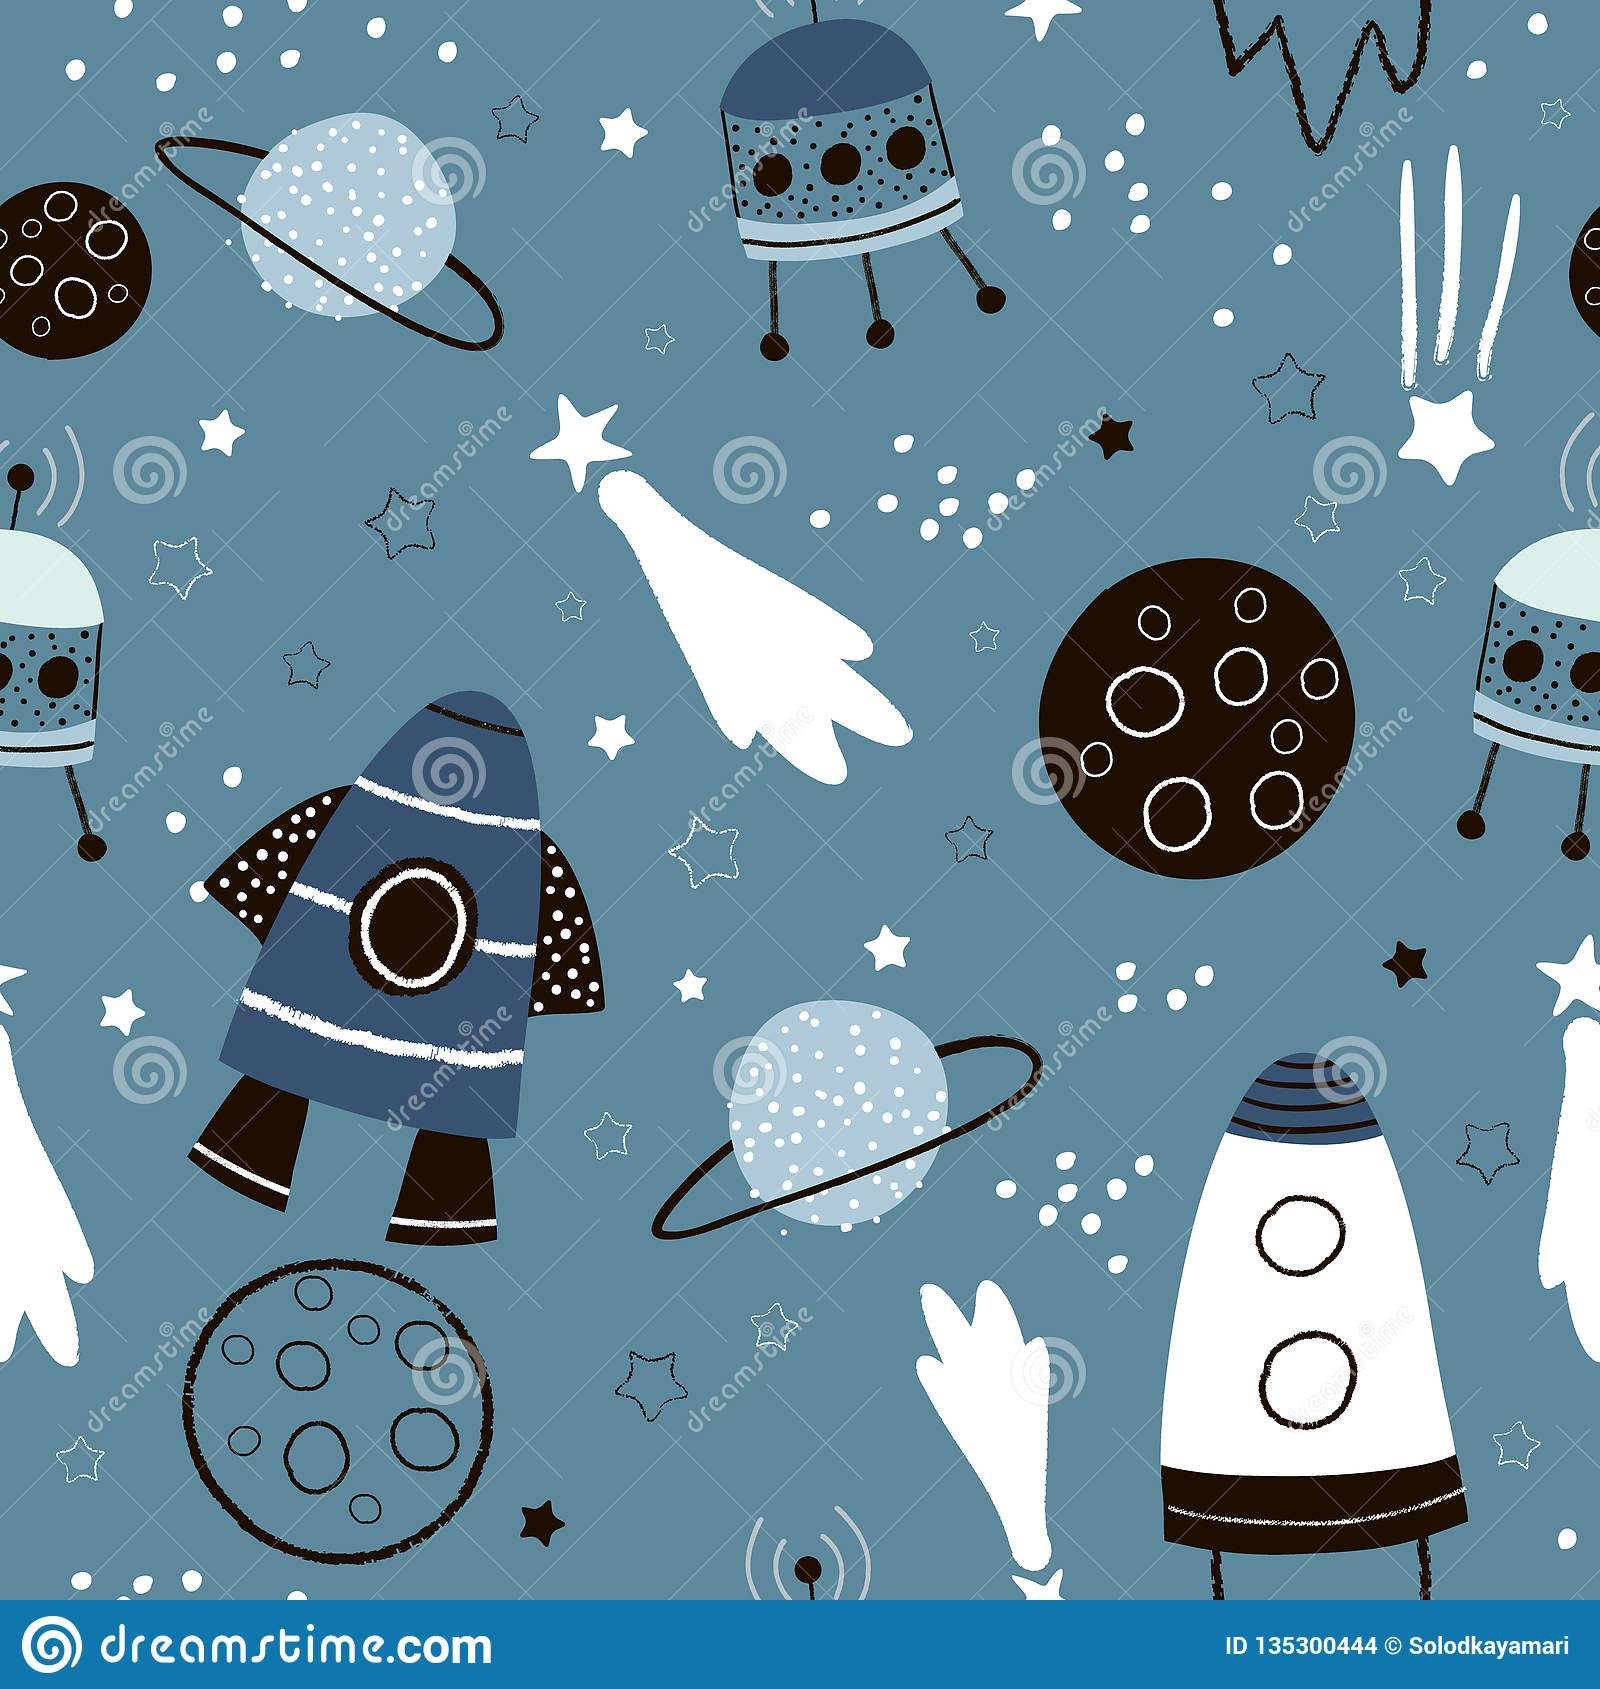 Childish seamless pattern with hand drawn space elements space, rocket, star, planet, space probe. Trendy kids vector background